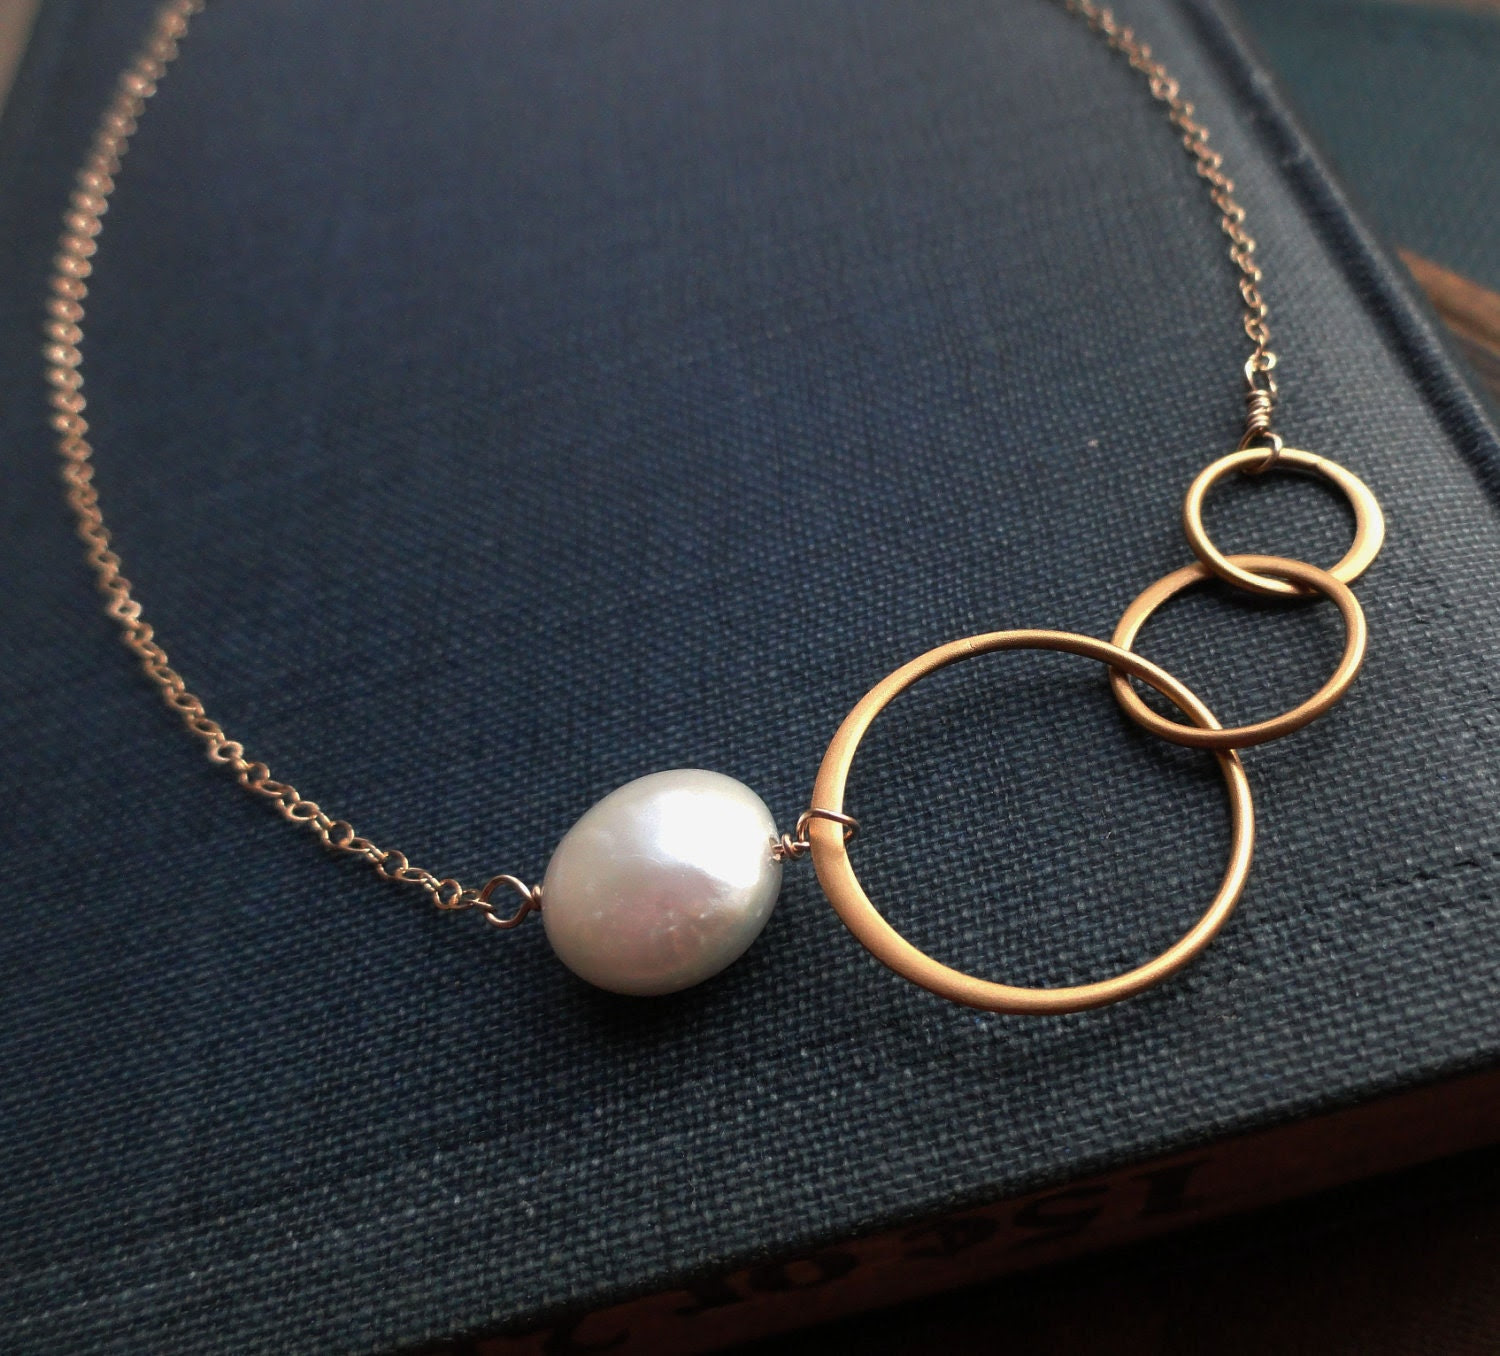 gold karma necklace, Freshwater pearl, bridesmaid gifts, eternity necklace, entwined rings, sisters, best friends, circle necklace